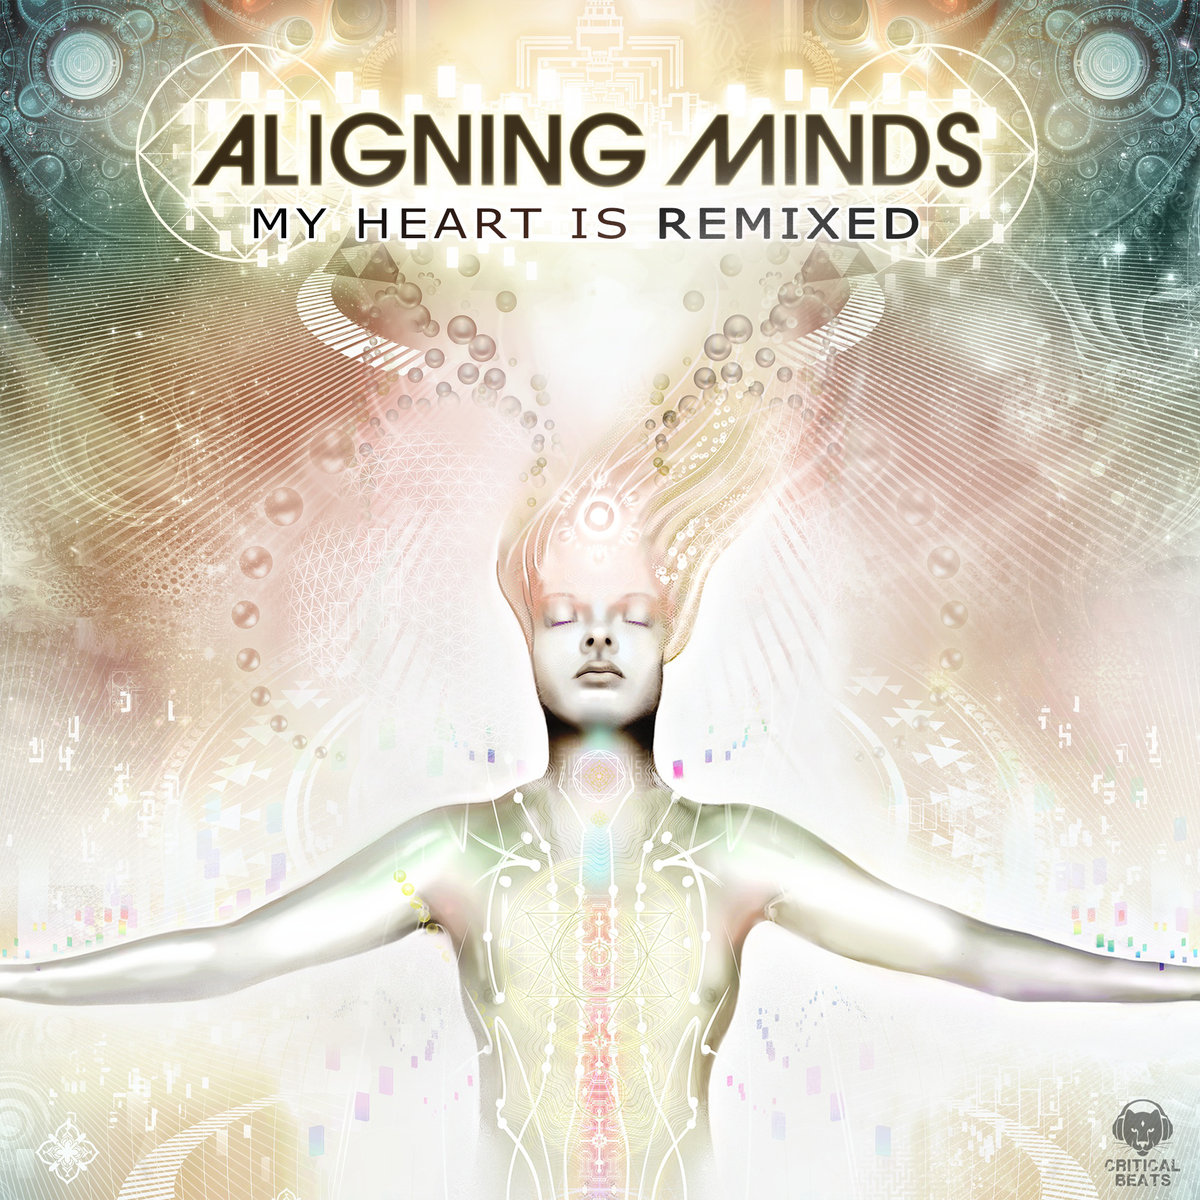 Aligning Minds - Oak Kalendar (Erothyme Remix) @ 'My Heart Is Remixed' album (asheville, baltimore)